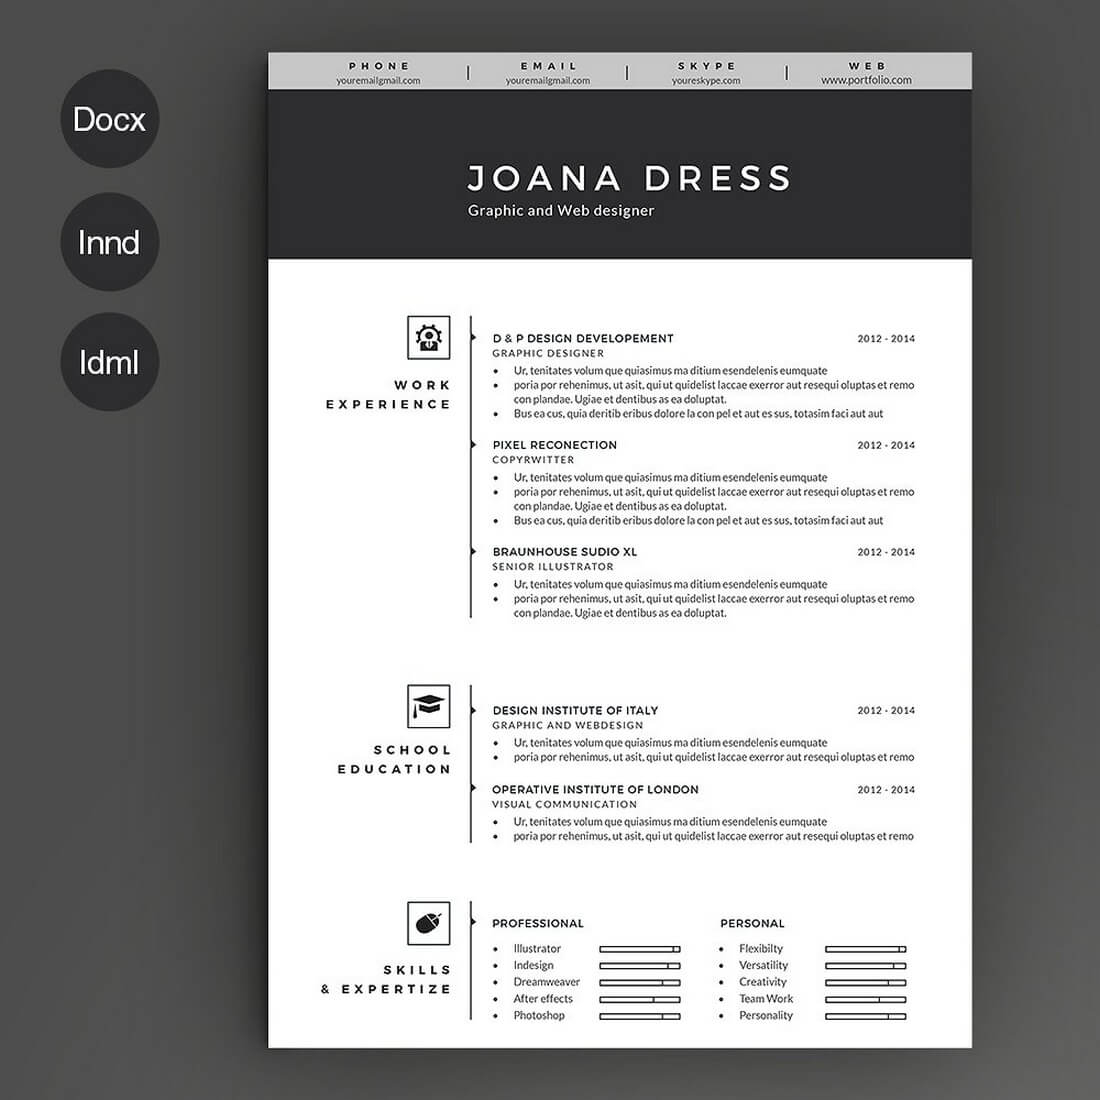 Famous 1 Page Resume Format Free Download Thick 10 Envelope Template Square 15 Year Old Resume Sample 18th Invitation Templates Youthful 1and1 Templates Pink2 Binder Spine Template The Best CV \u0026 Resume Templates: 50 Examples \u2013 Ok Huge